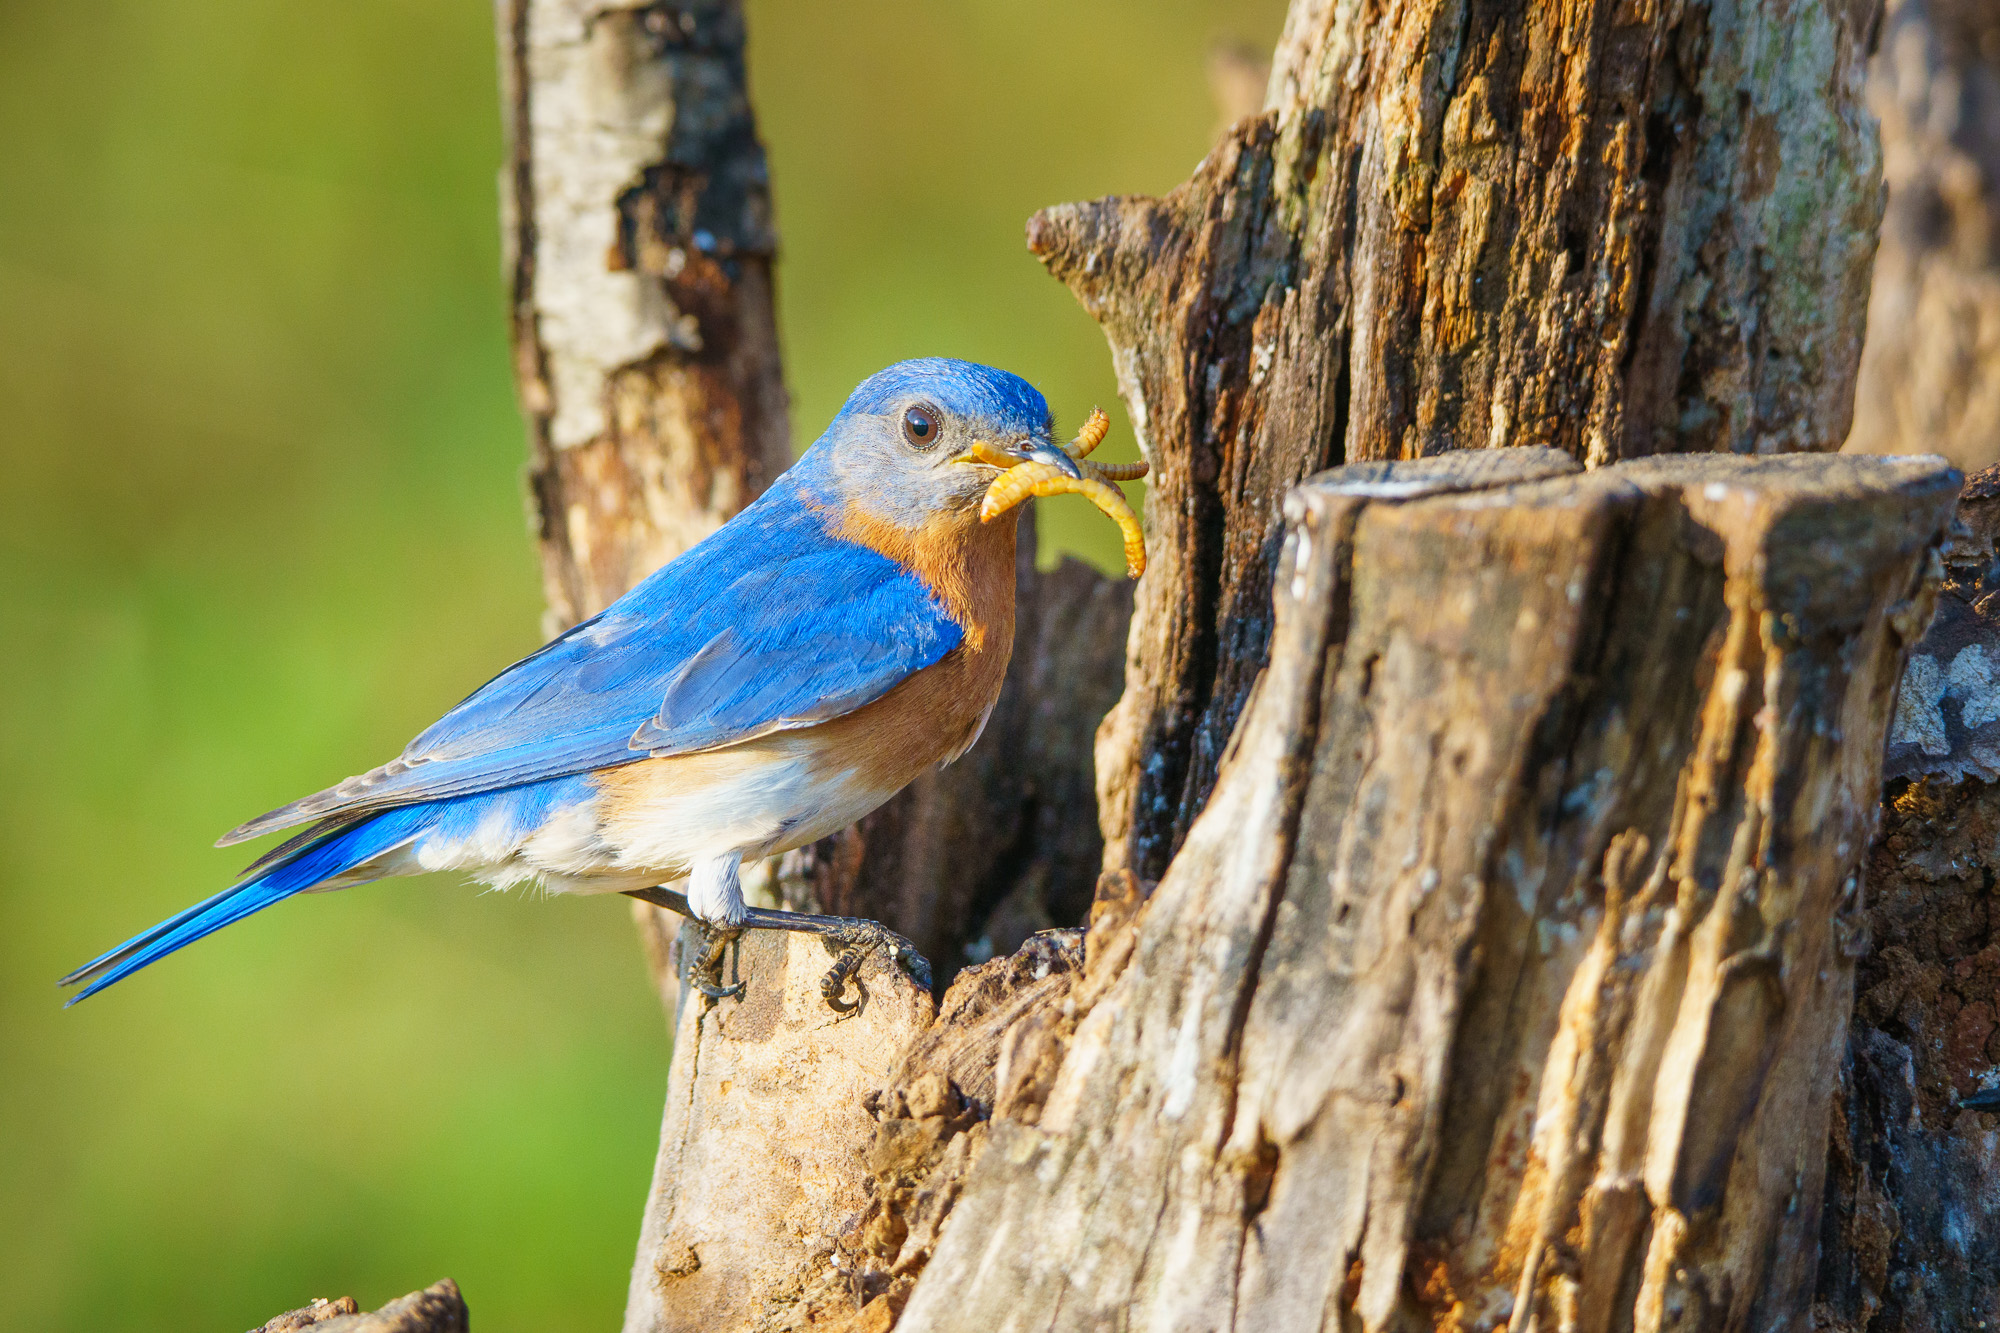 Eastern Bluebird with Meal Worms